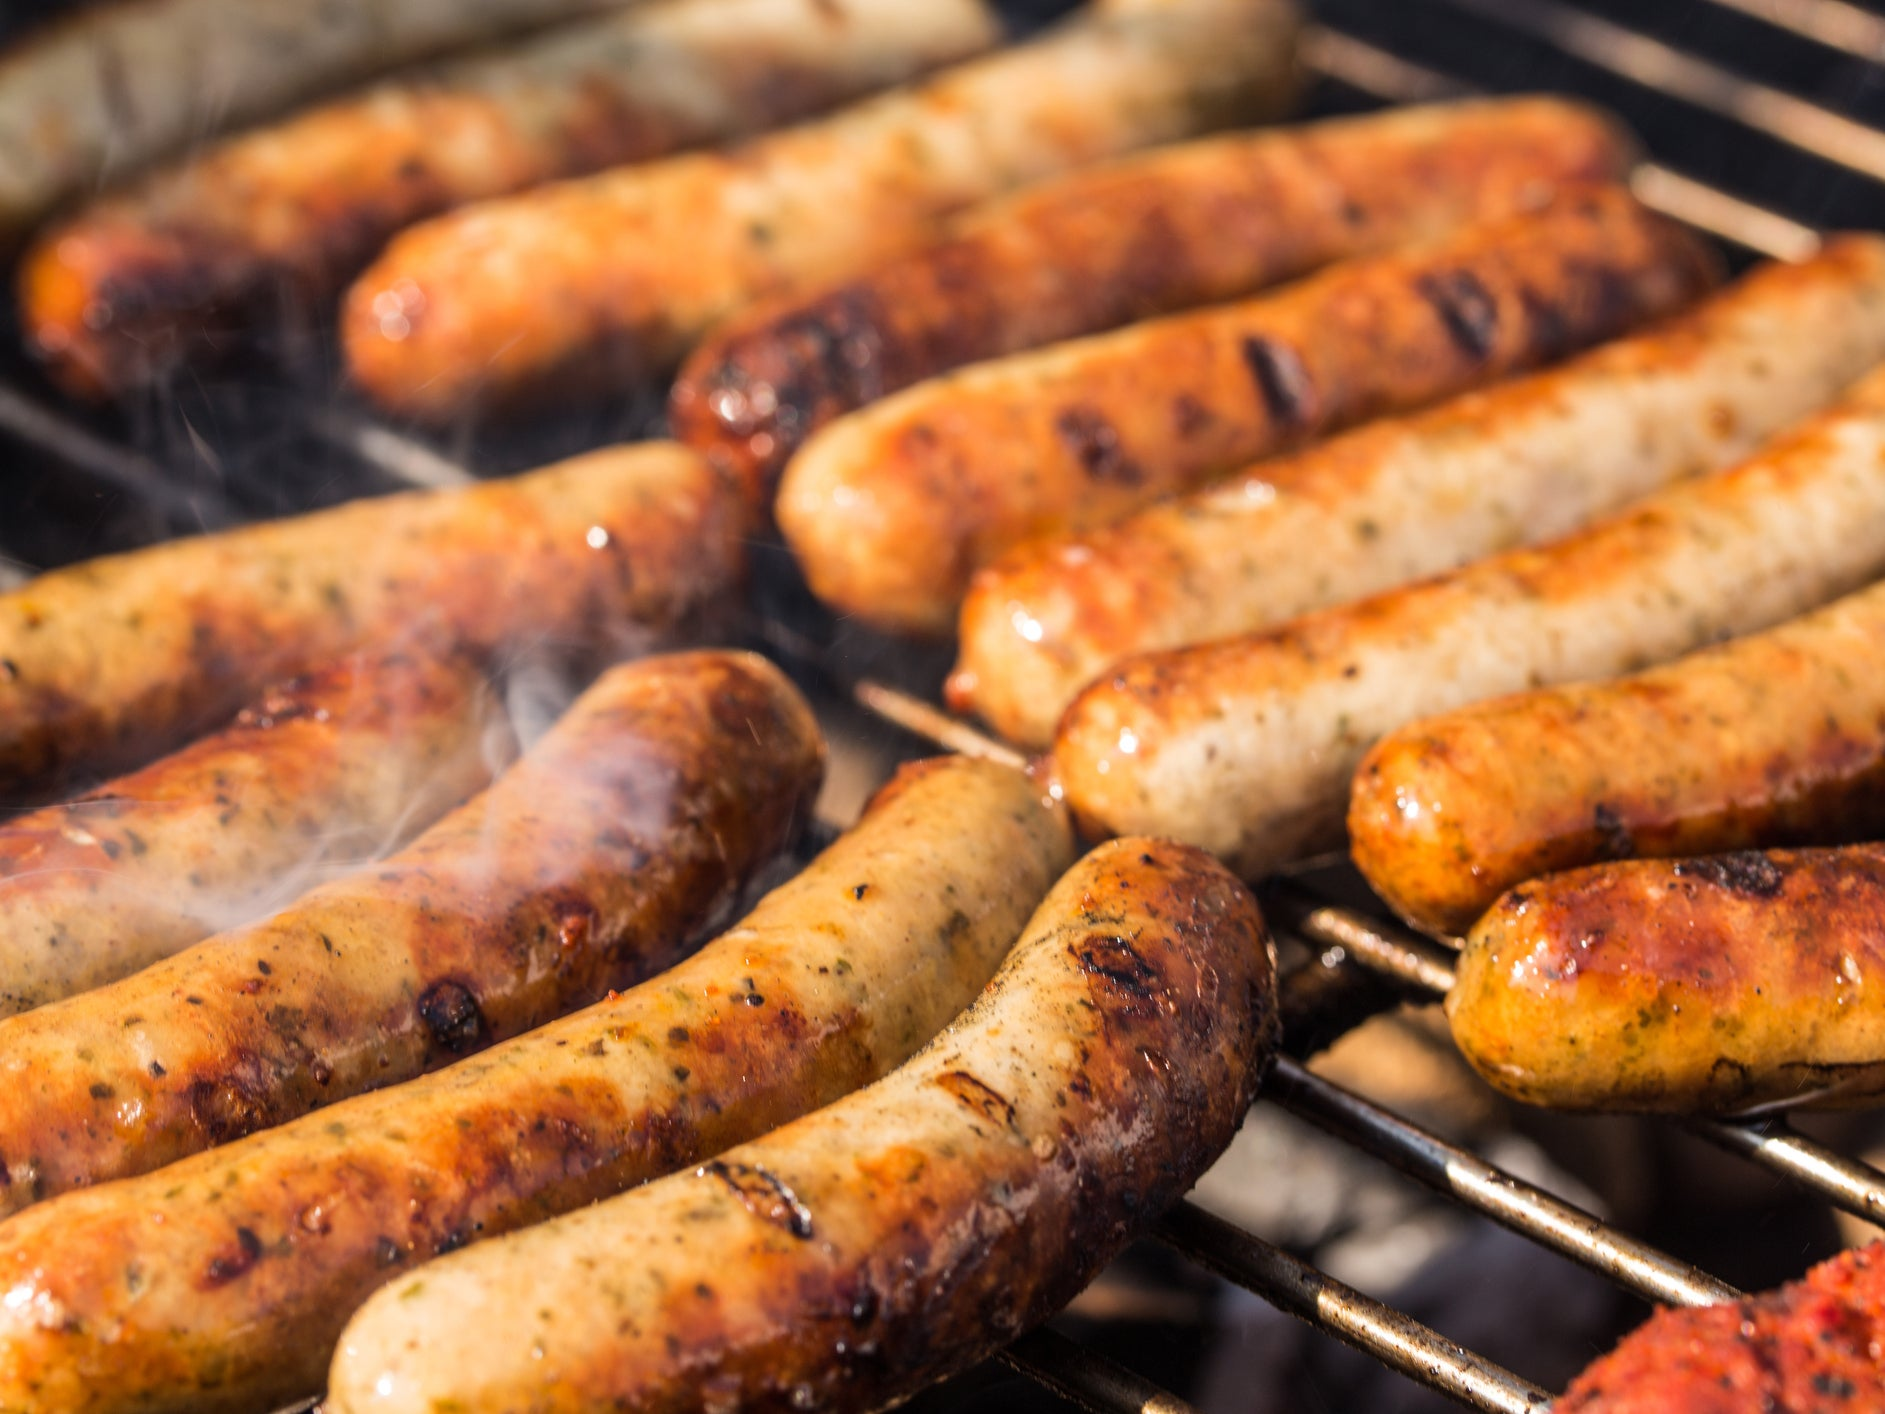 Hepatitis E Barbecue Warning Over Brexit Virus Found In